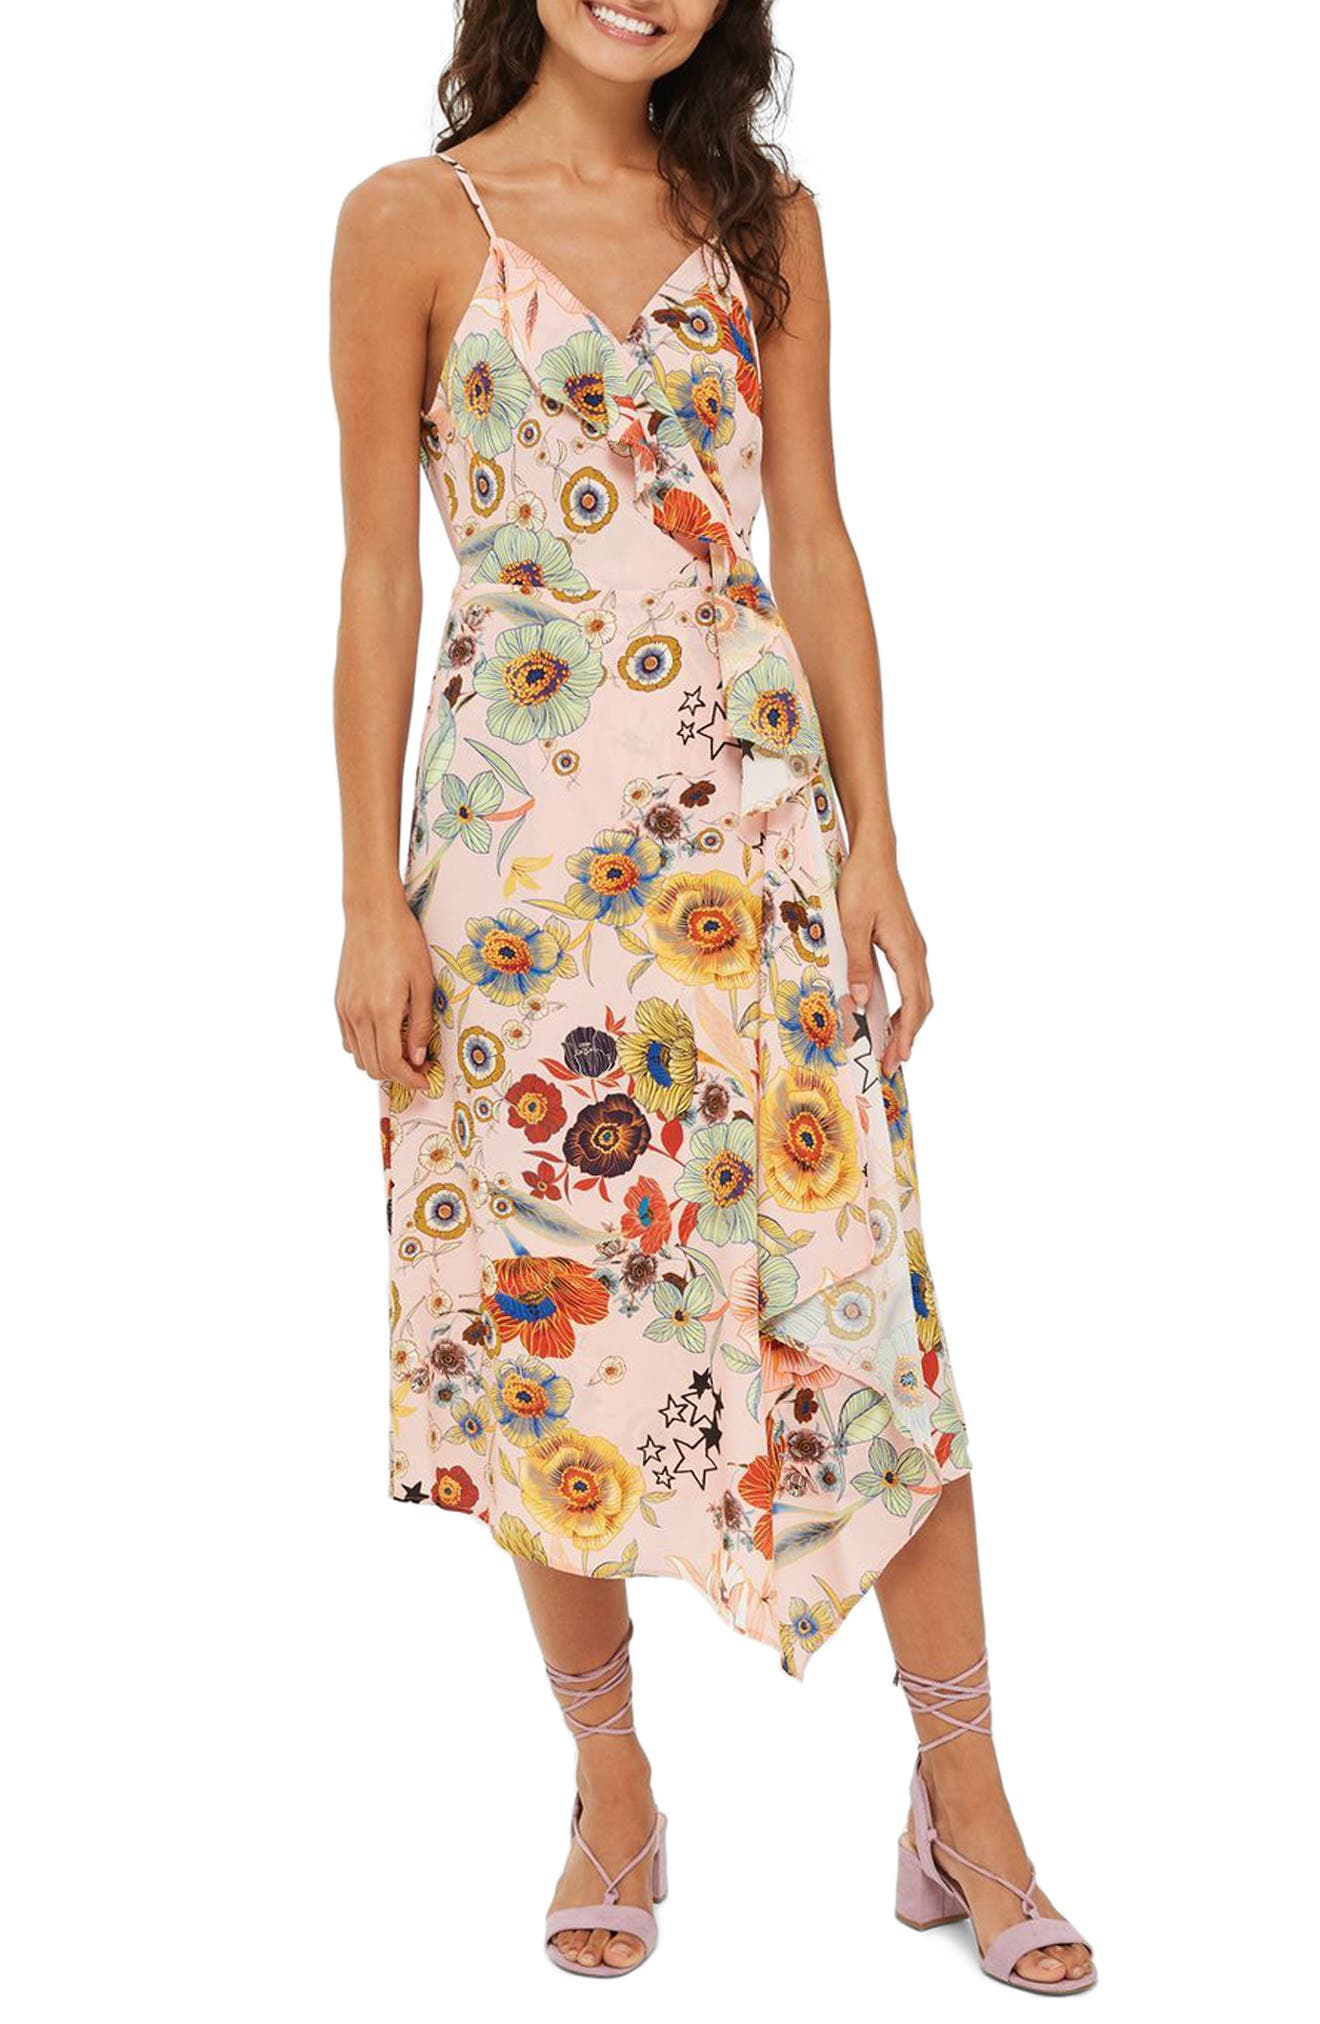 Topshop Star Floral Ruffle Wrap Slipdress